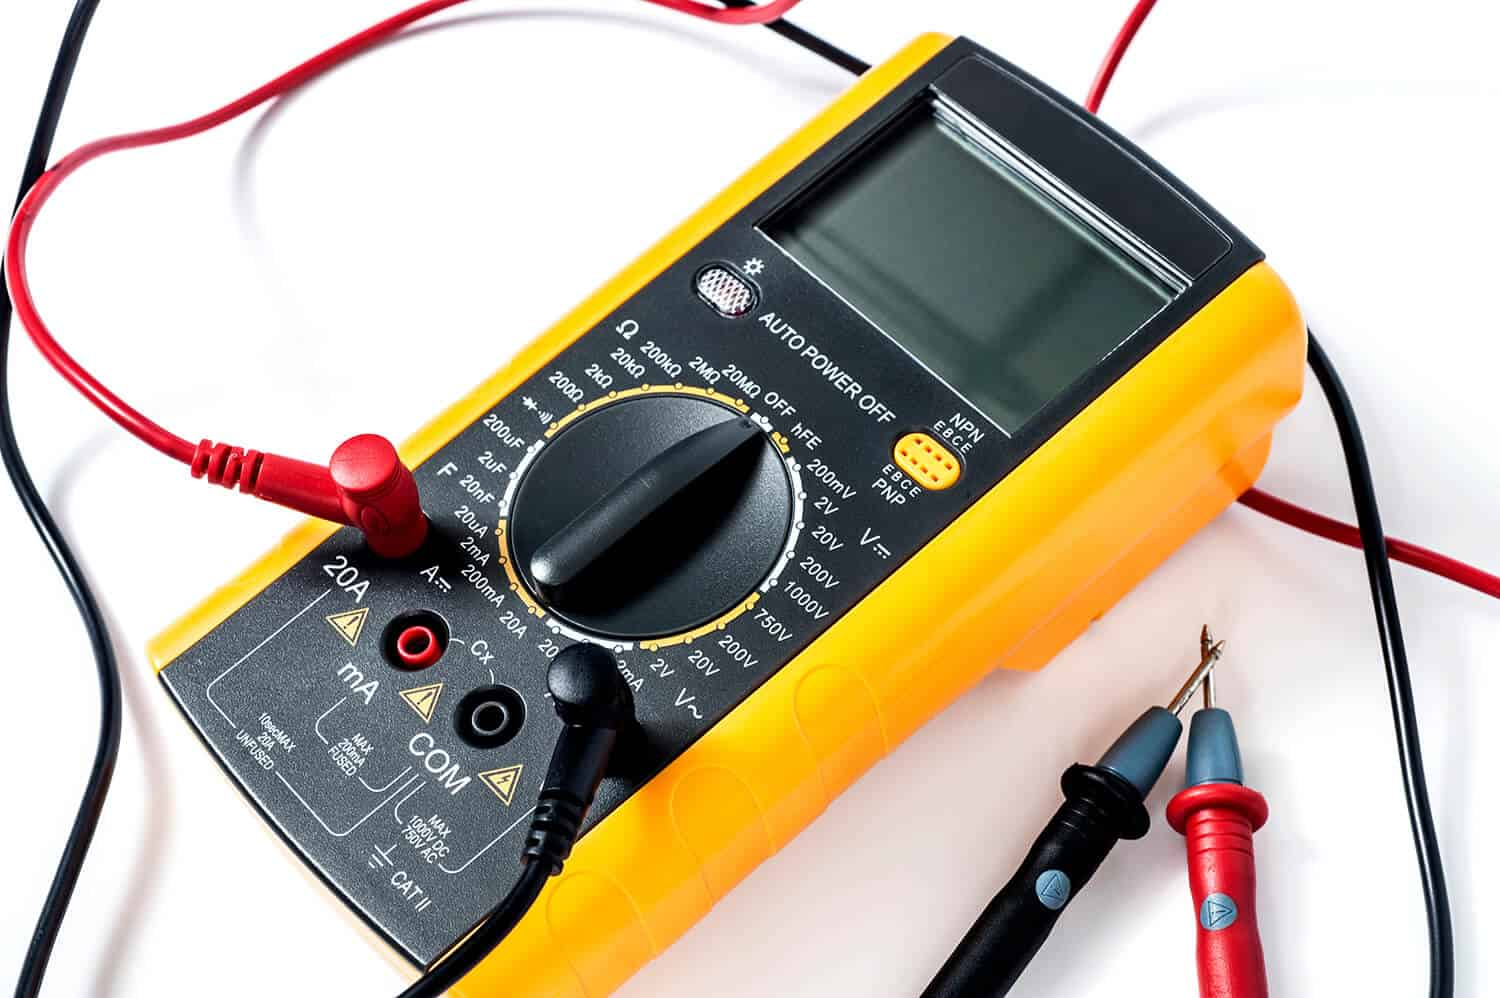 Check it With an Electrical Voltmeter or Multimeter